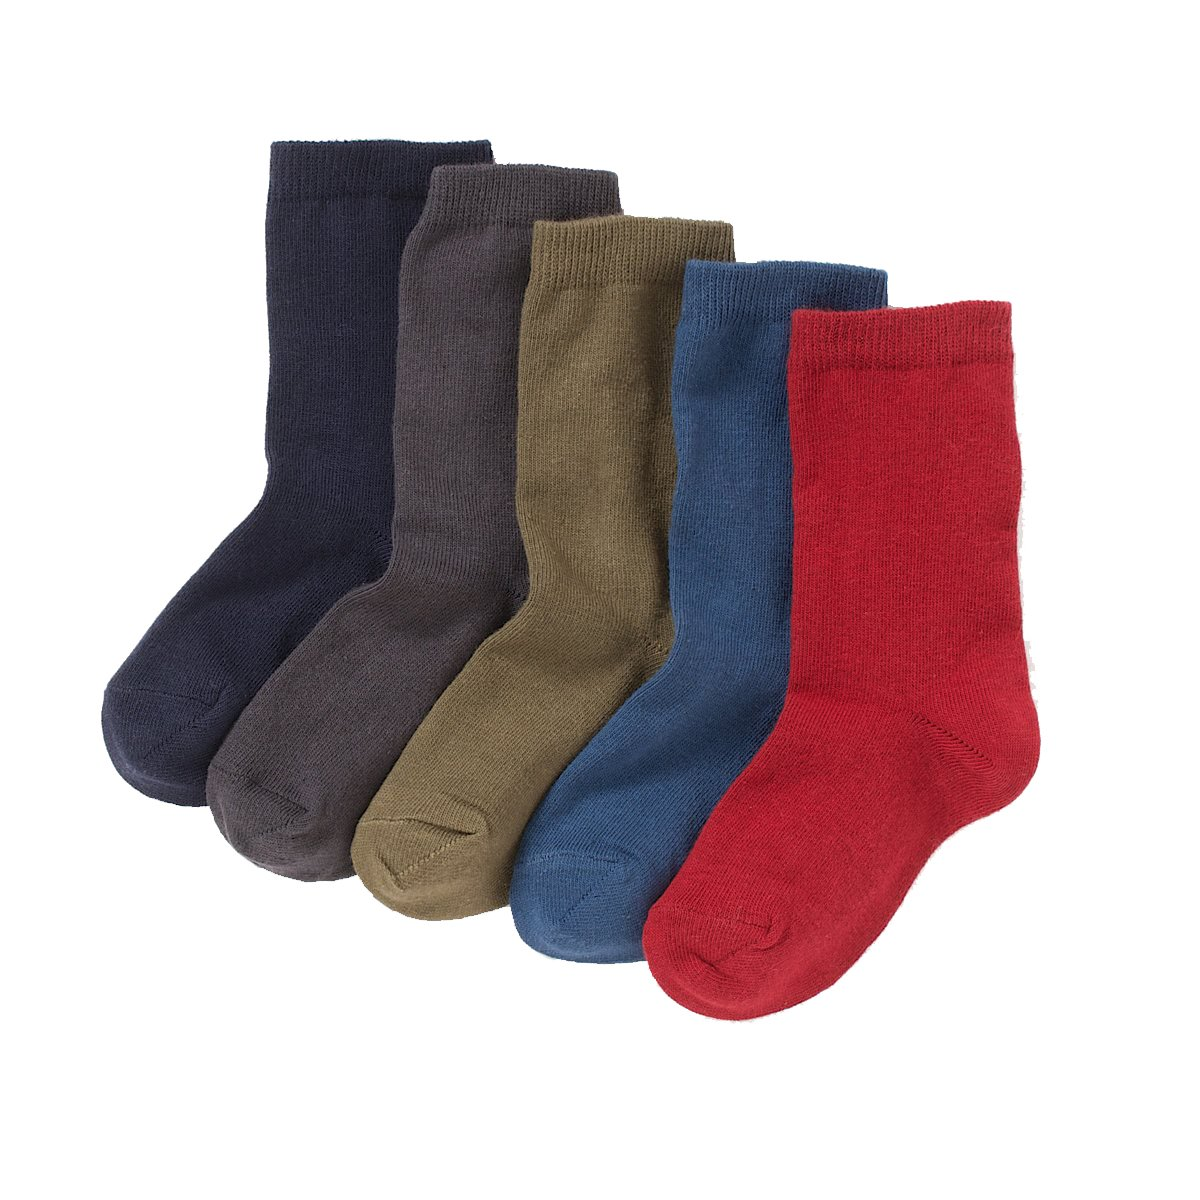 La Redoute Collections Big Boys Pack Of 5 Pairs Of Plain Ankle Socks Blue Size 19/22 (3 To 5.5)